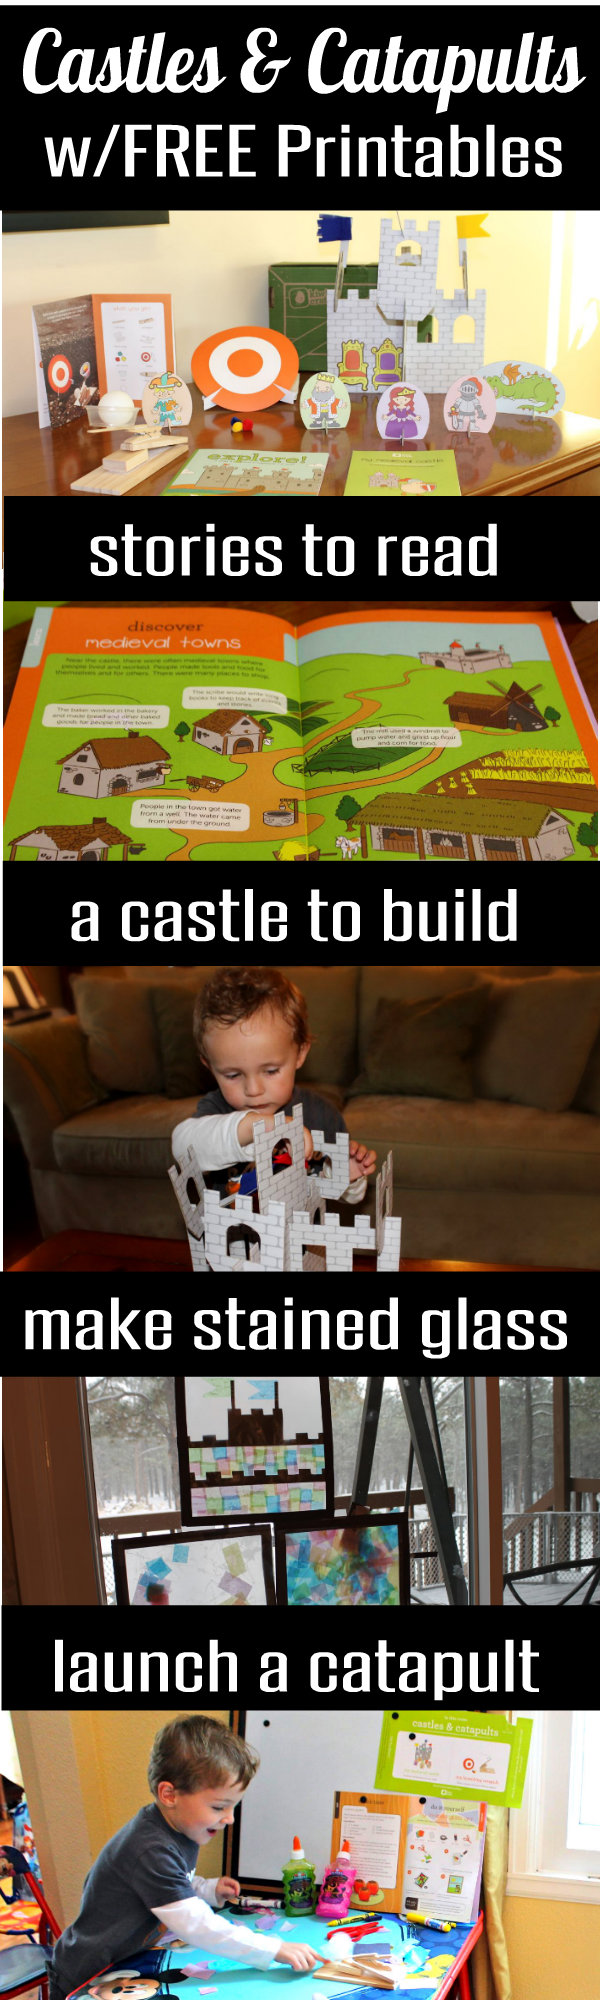 Castles and Catapults Preschool Activities Games and Crafts HappyandBlessedHome.com